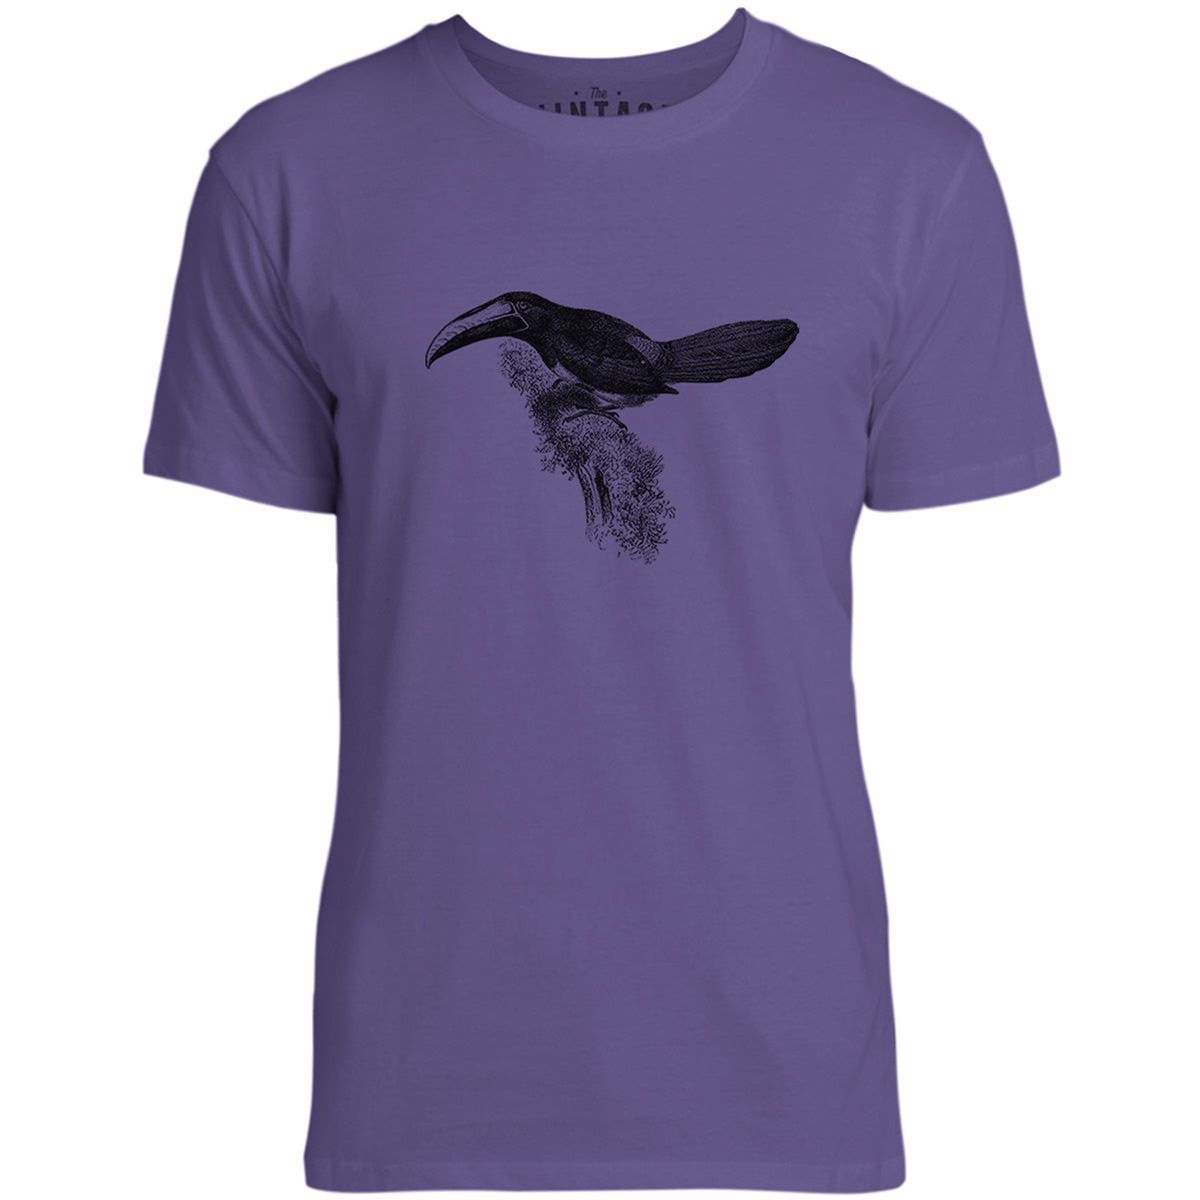 Mintage Amazon Toucan Mens Fine Jersey T-Shirt (Purple)